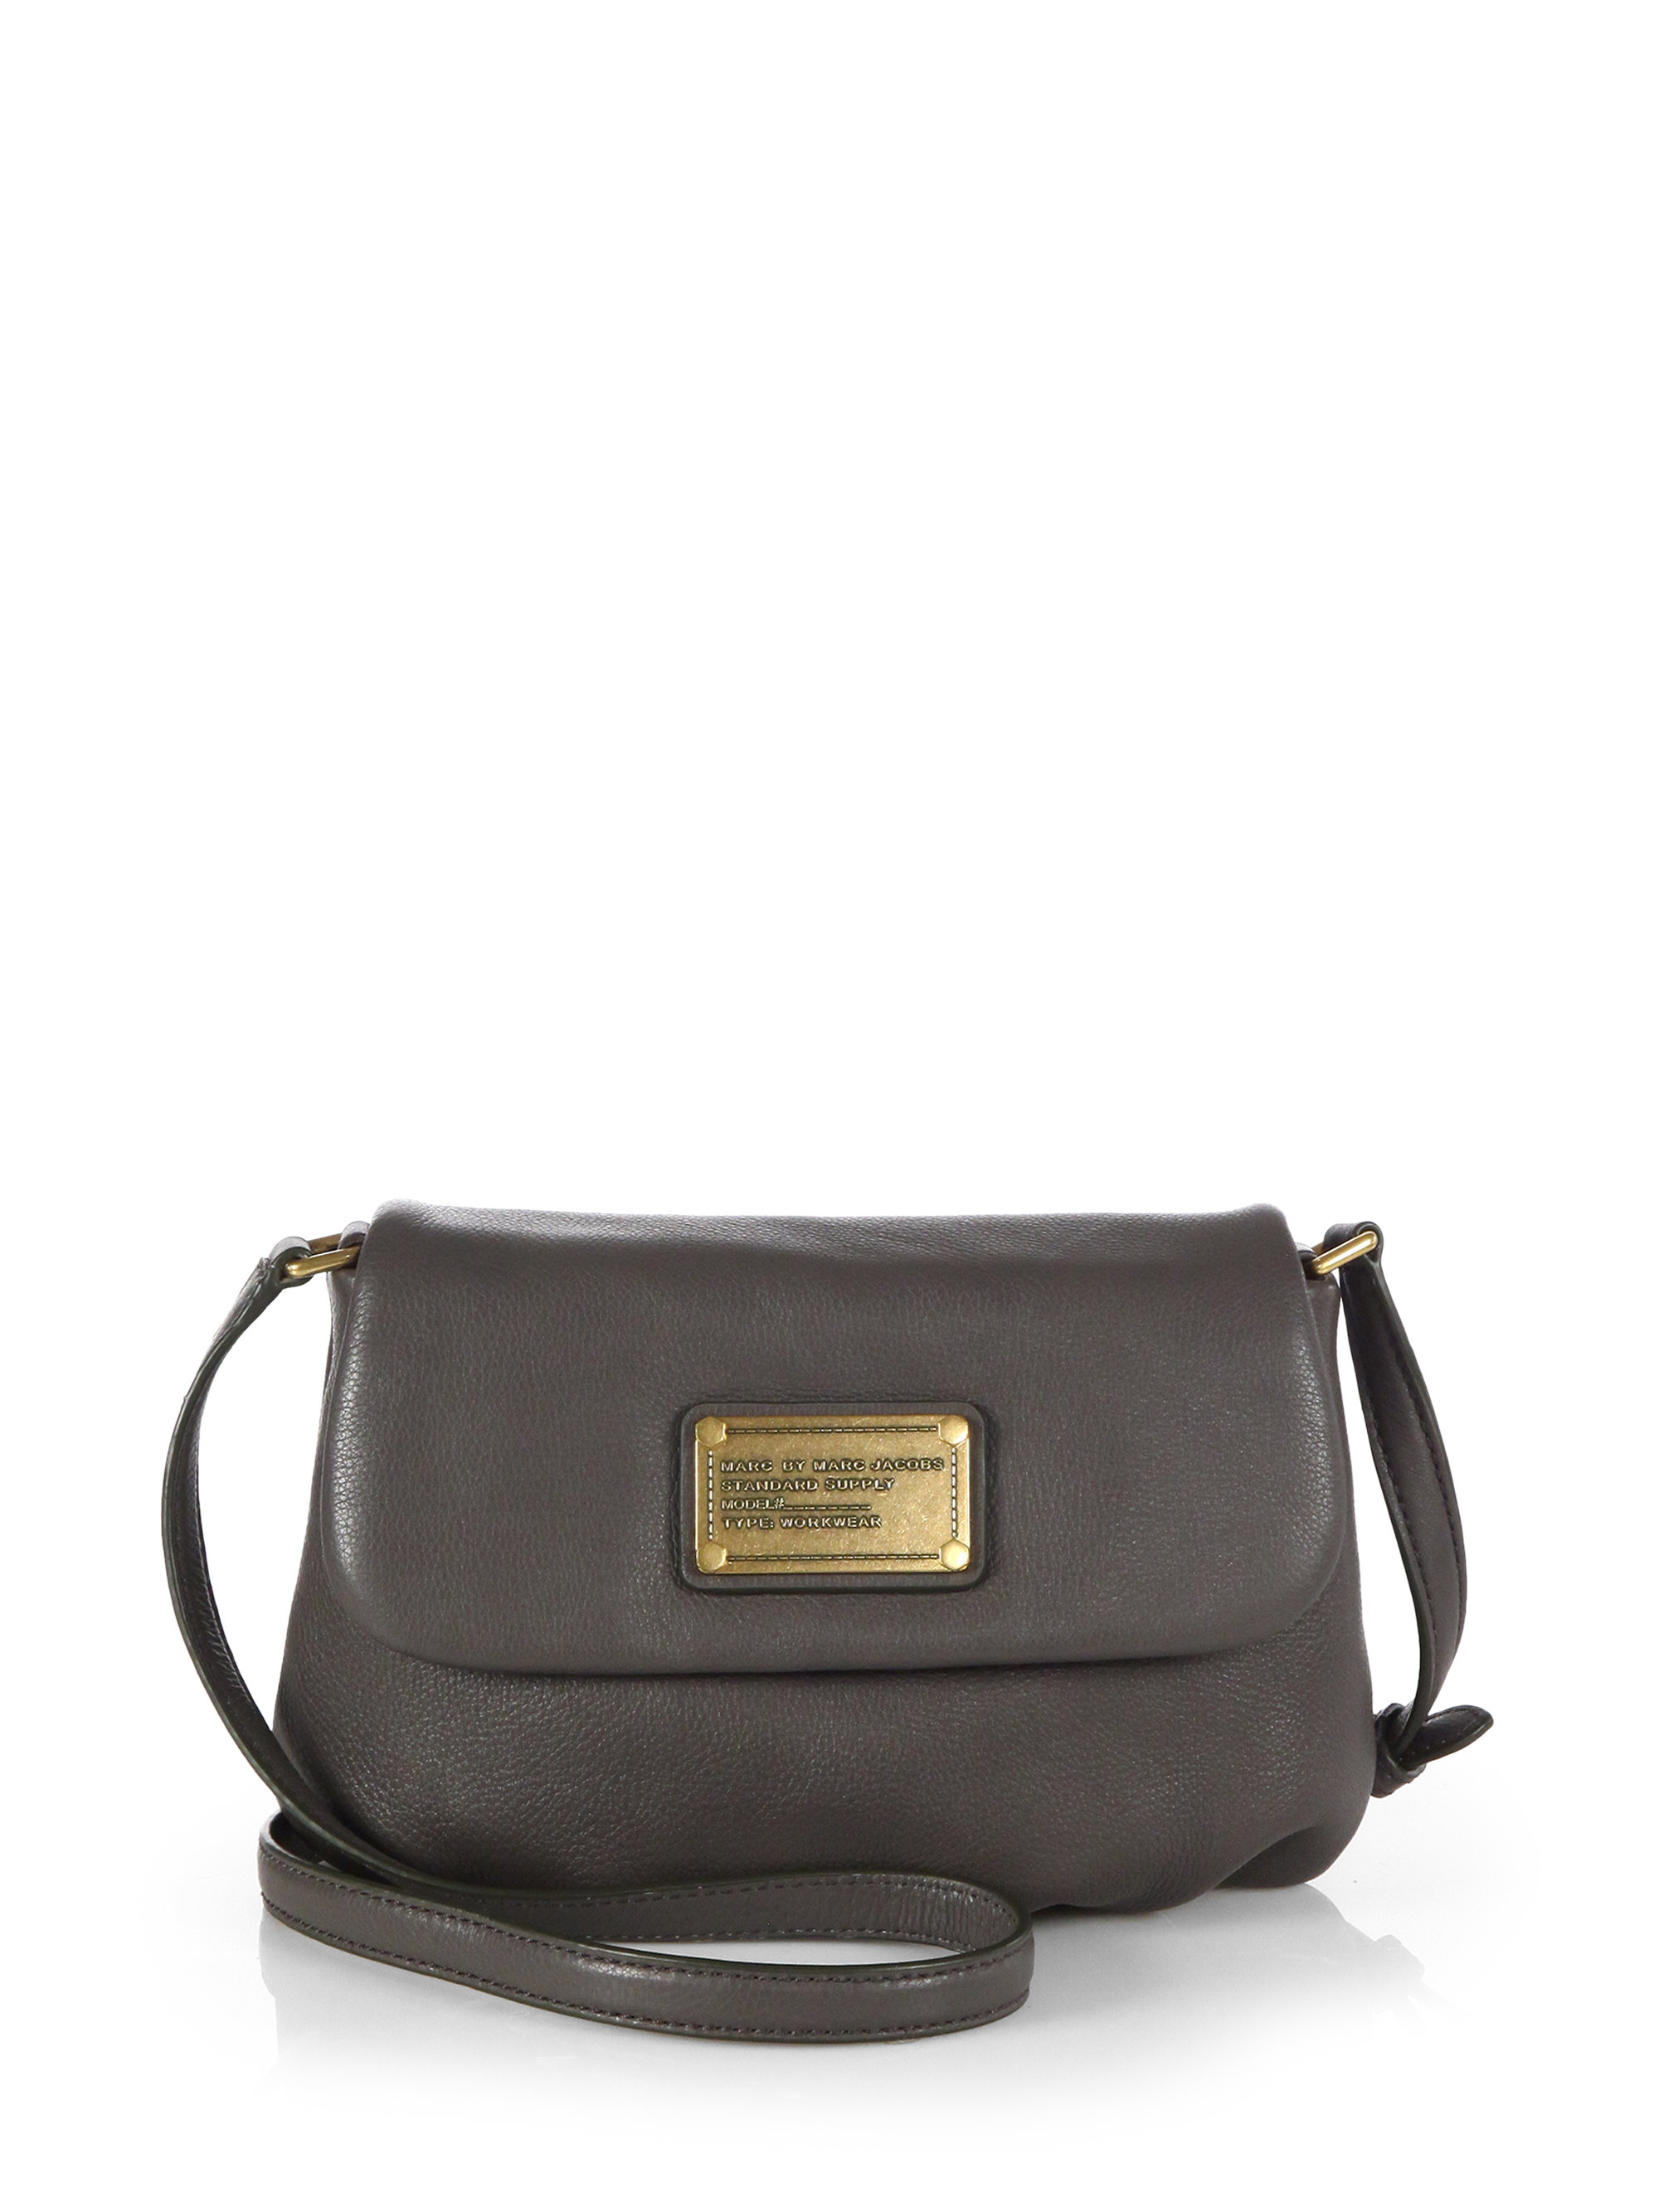 f2837877c8c Marc By Marc Jacobs Classic Q Flap Percy Shoulder Bag in Gray - Lyst